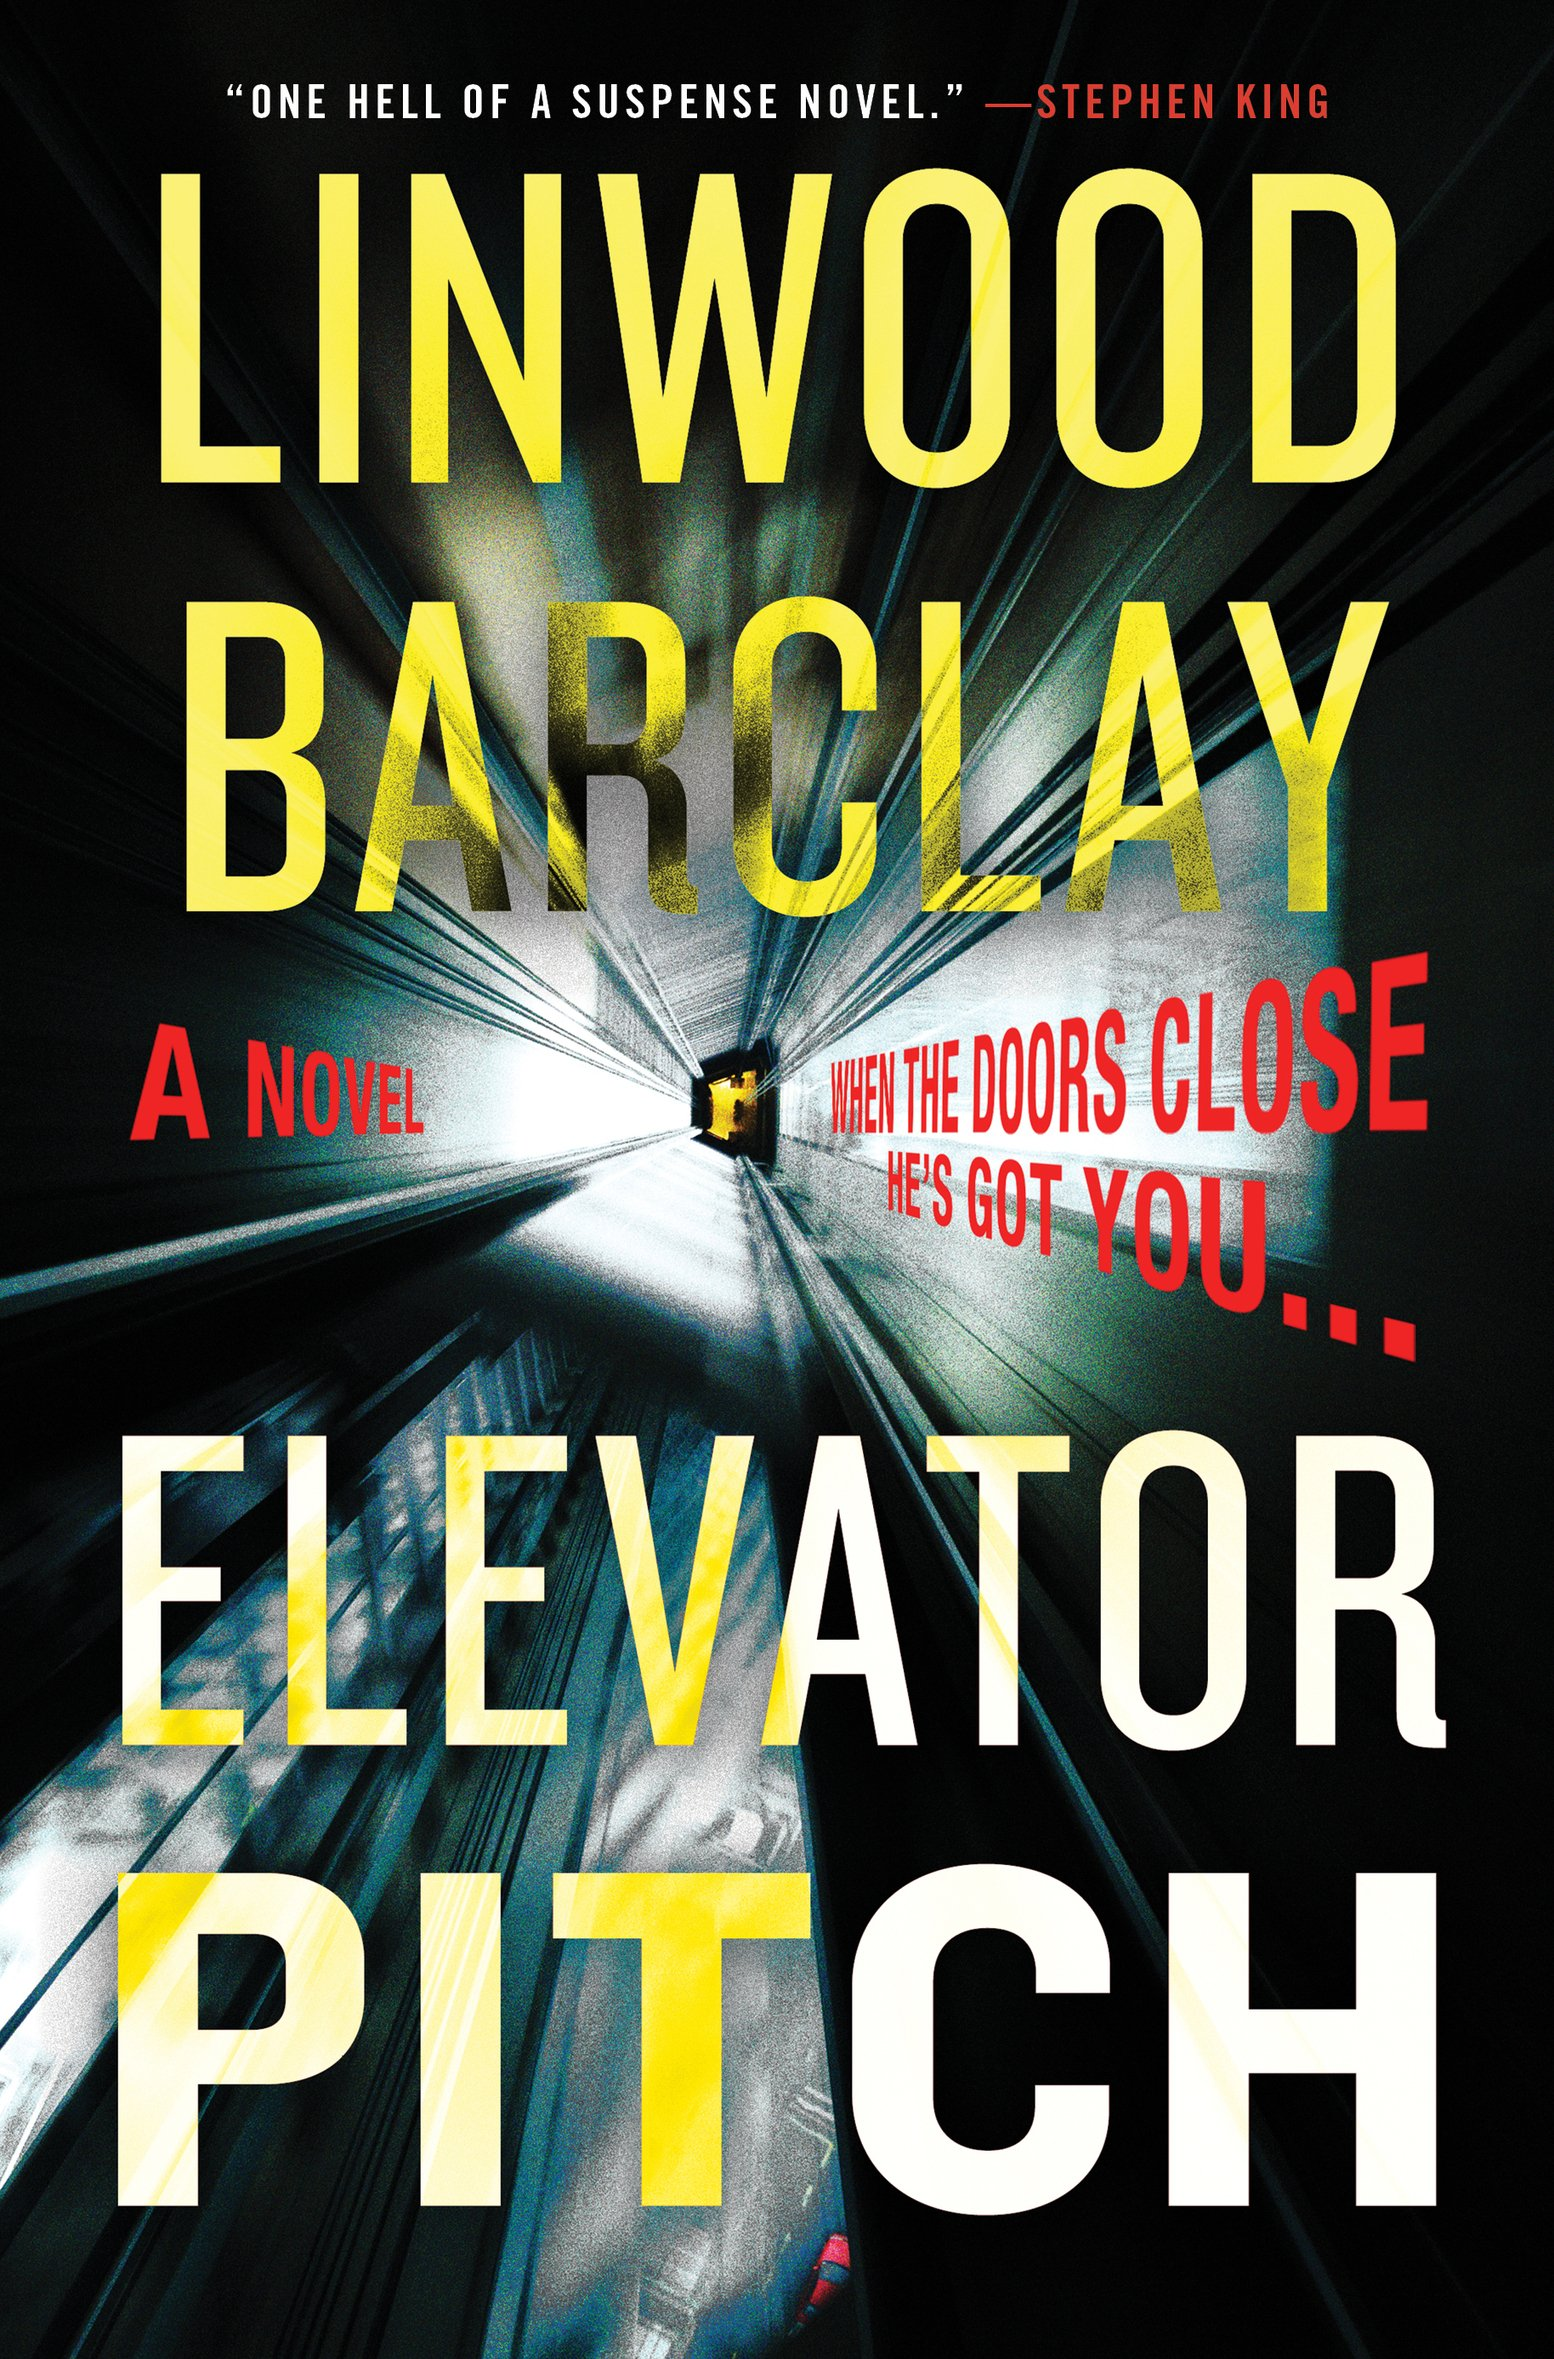 Review: Linwood Barclay's 'Elevator Pitch' is vivid story